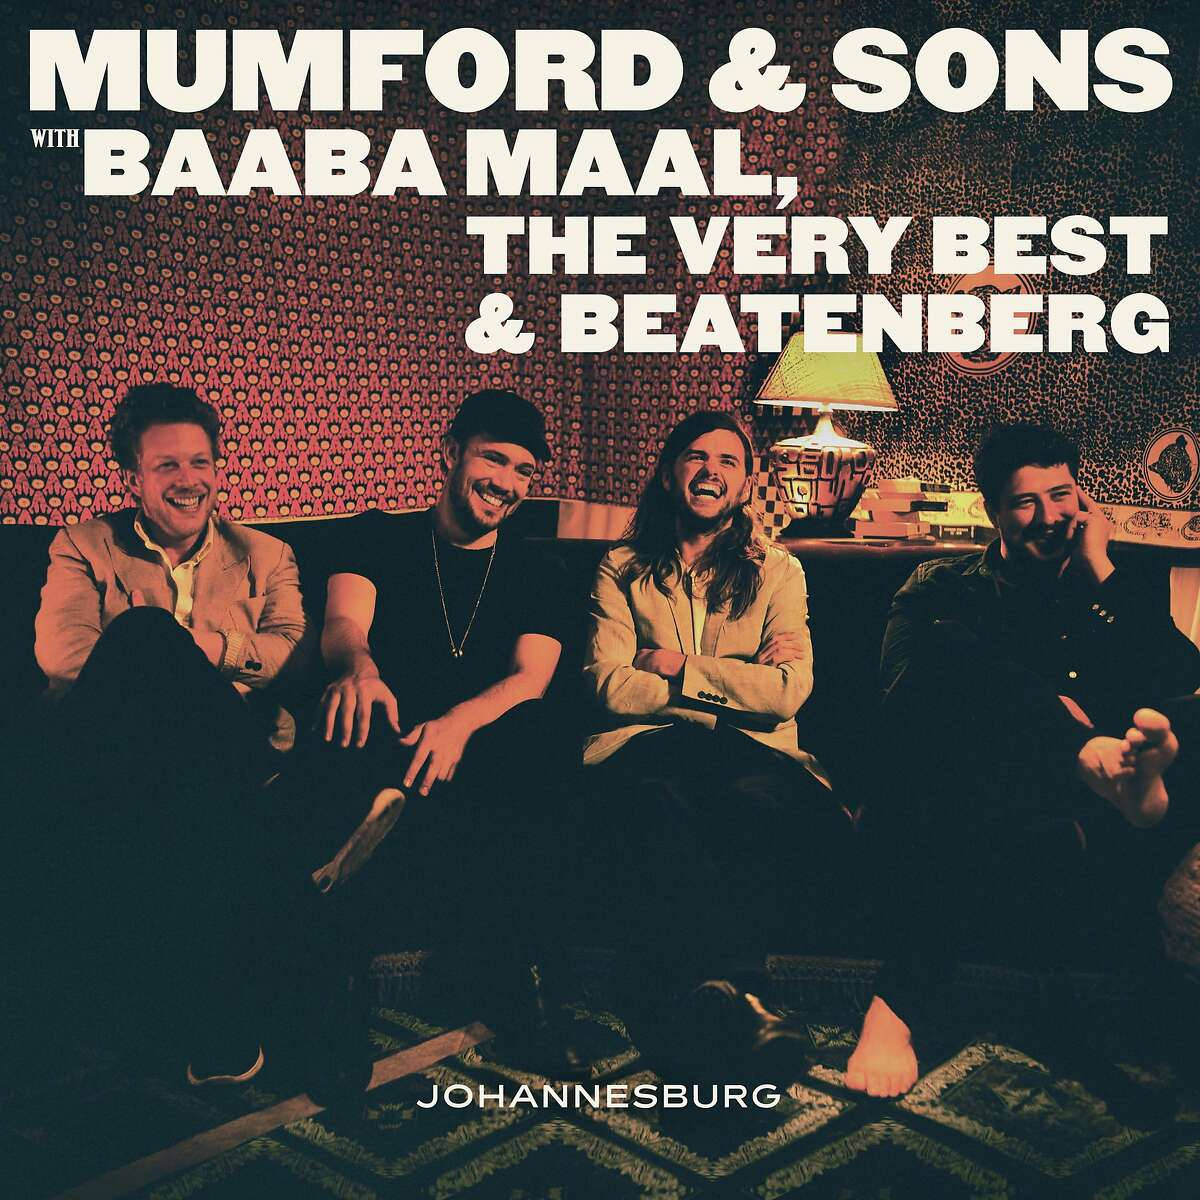 """This CD cover image released by Glassnote shows """"Johannesburg,"""" the latest release by Mumford & Sons. (Glassnote via AP)"""